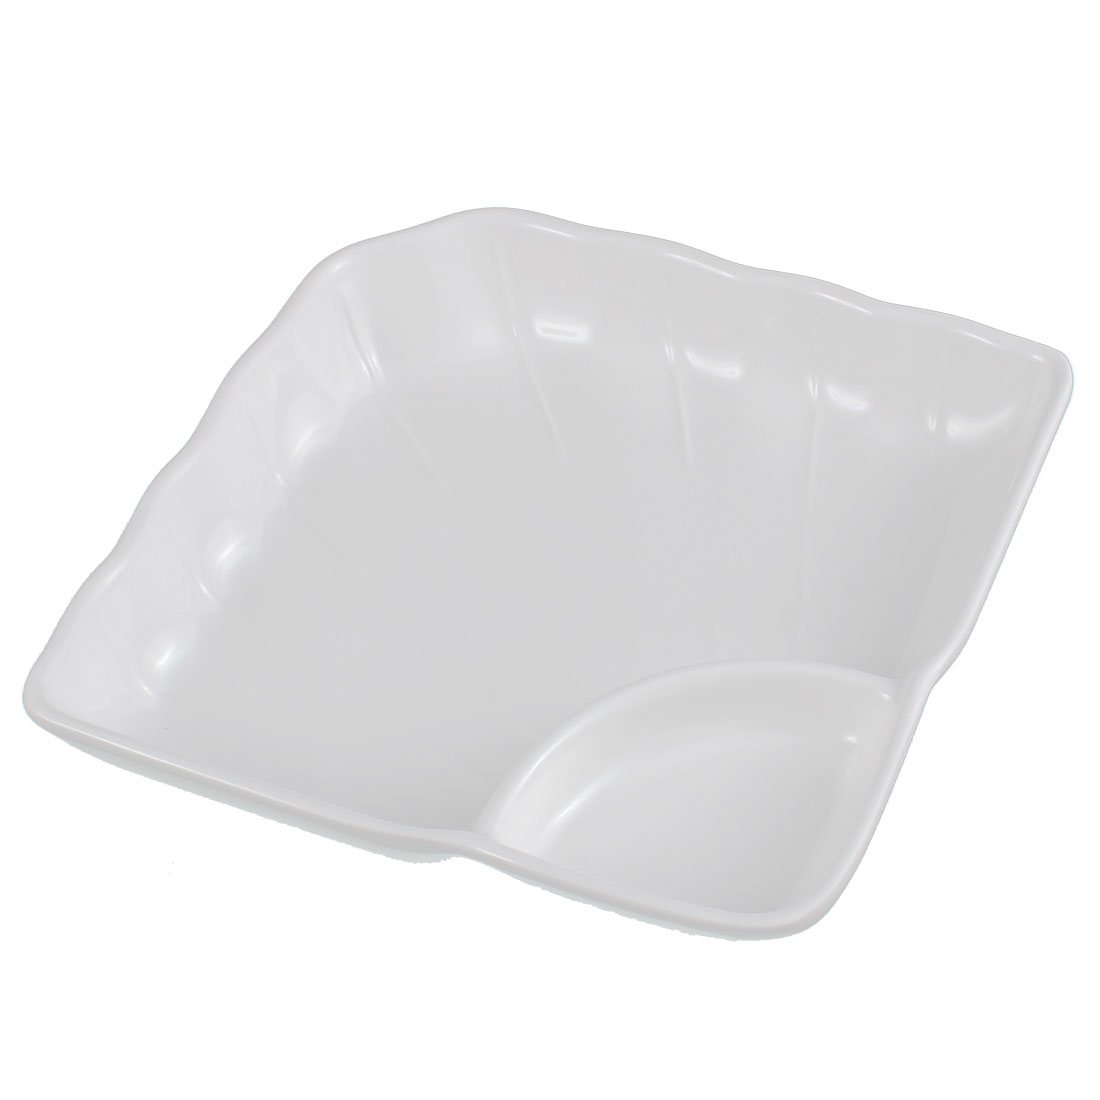 Kitchen Restaurant Plastic 2 Compartments Food Sushi Fruit Plate Dish White